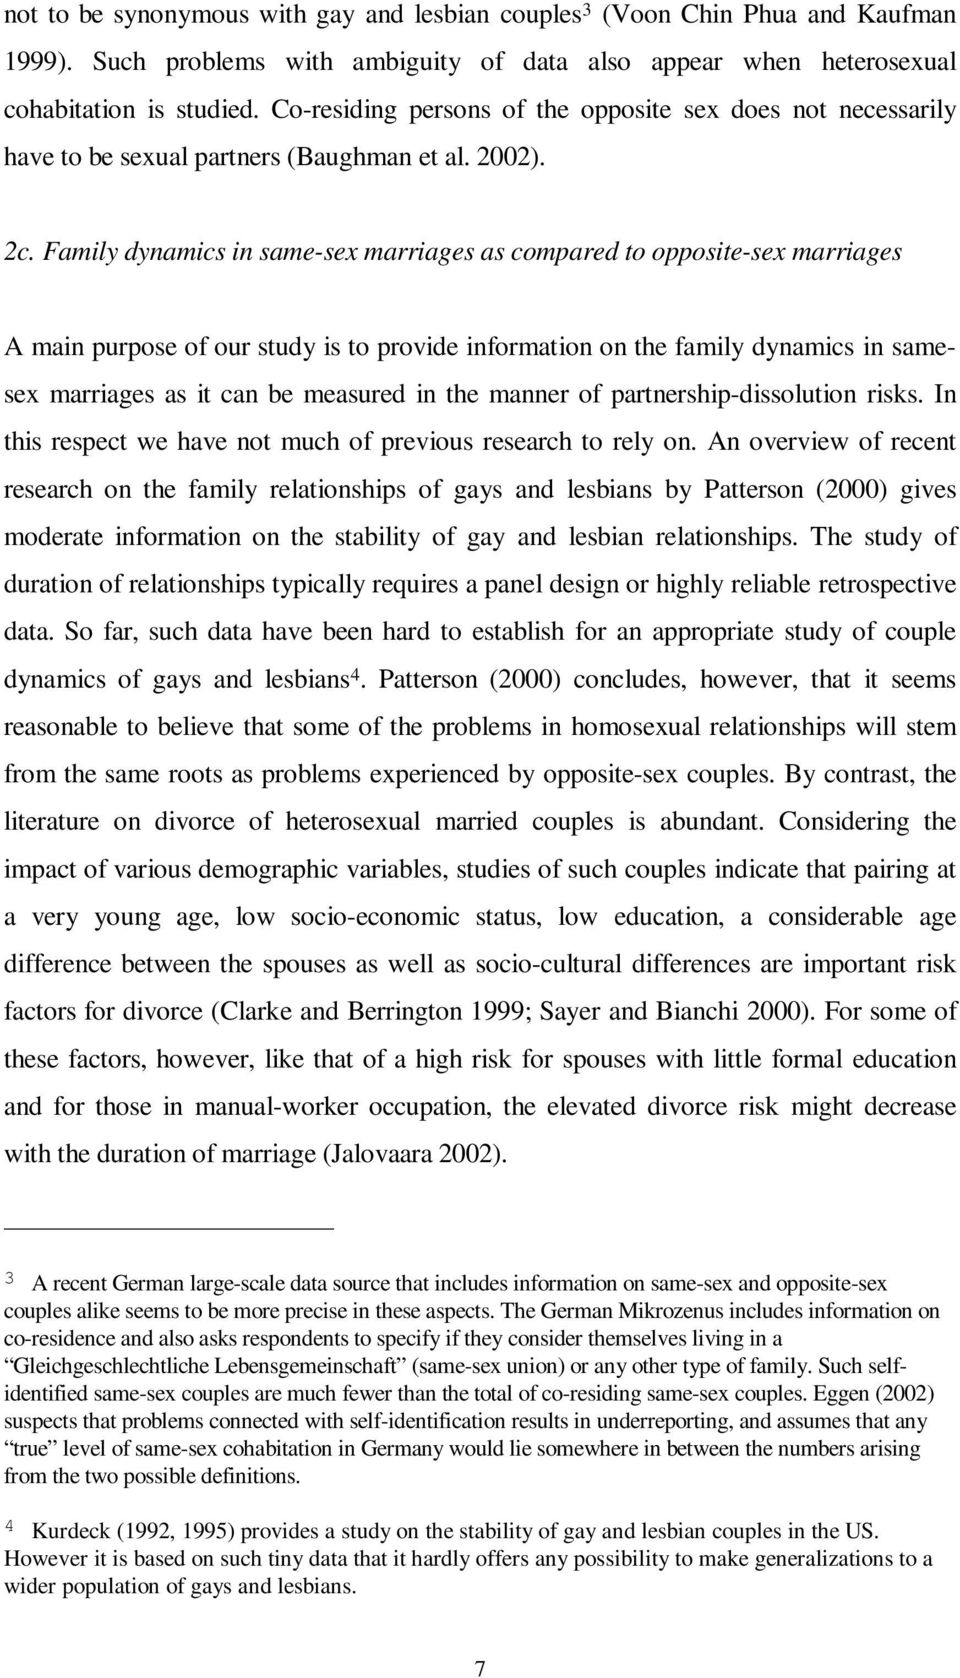 Family dynamics in same-sex marriages as compared to opposite-sex marriages A main purpose of our study is to provide information on the family dynamics in samesex marriages as it can be measured in